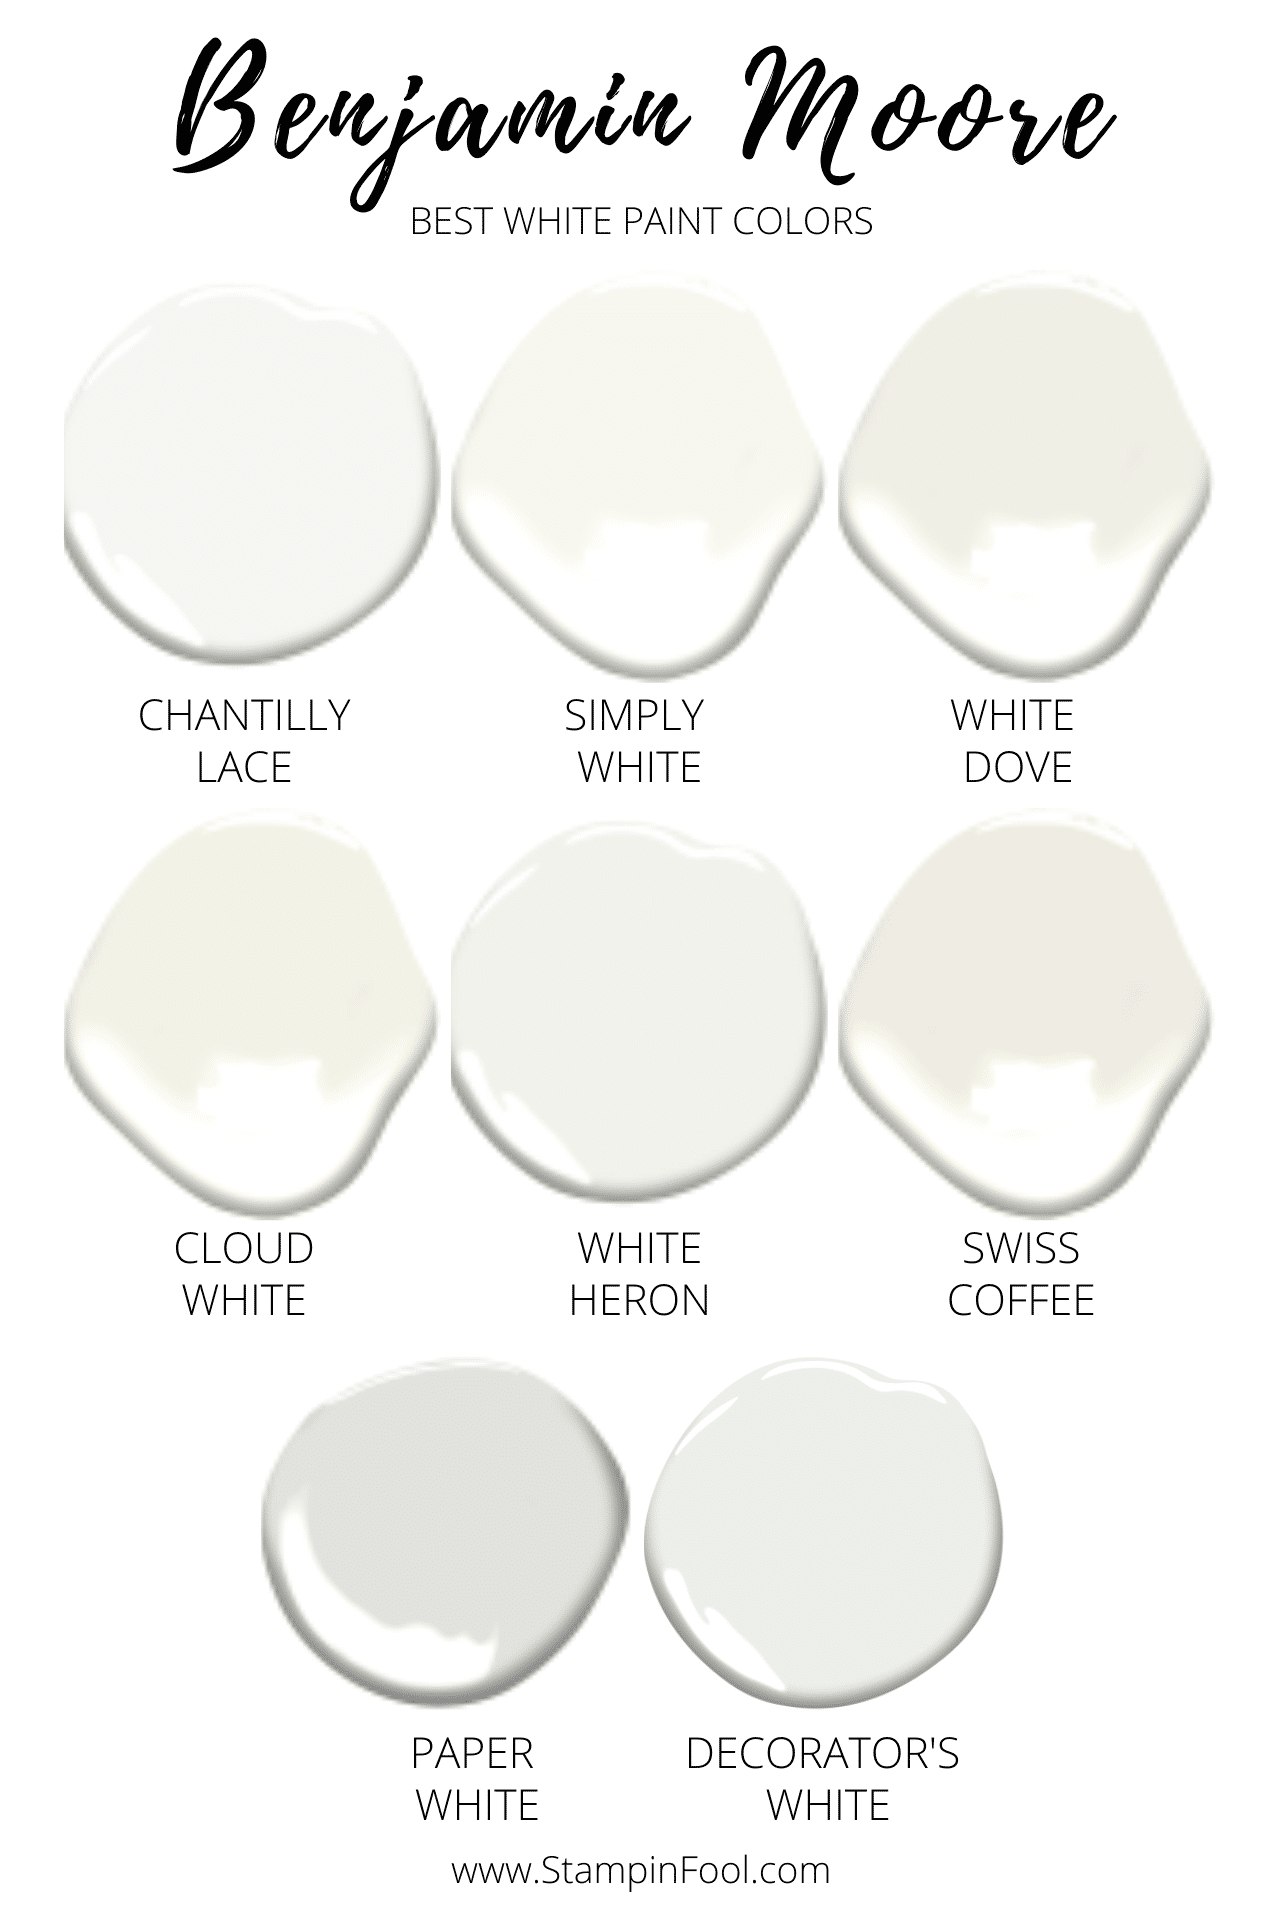 The Best 8 Benjamin Moore White Paint Colors In 2020,Modern Cottage Bedroom Decor